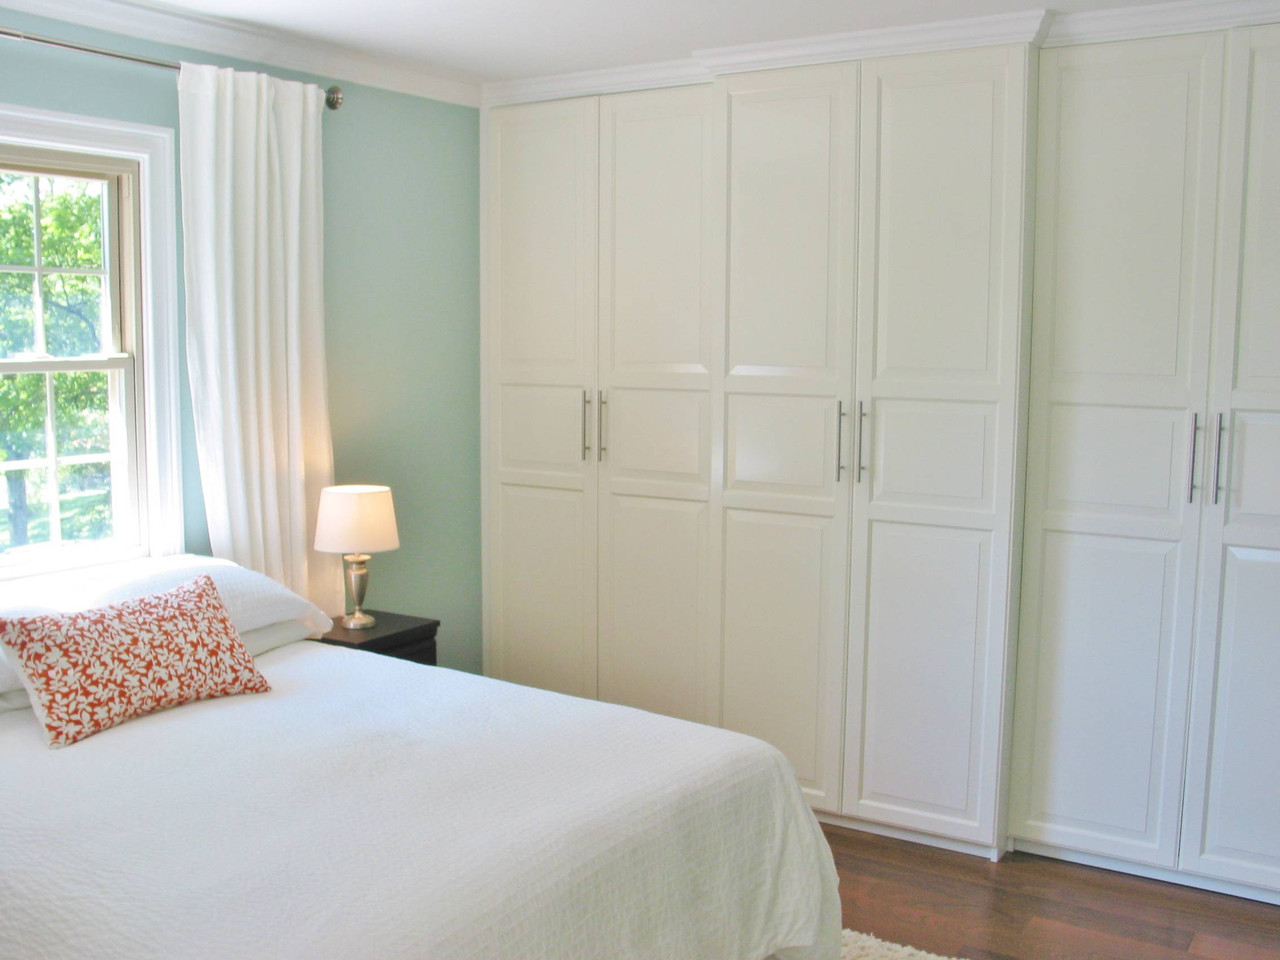 bedroom_white_storage_wit__all_pillows_and_lamps.jpg